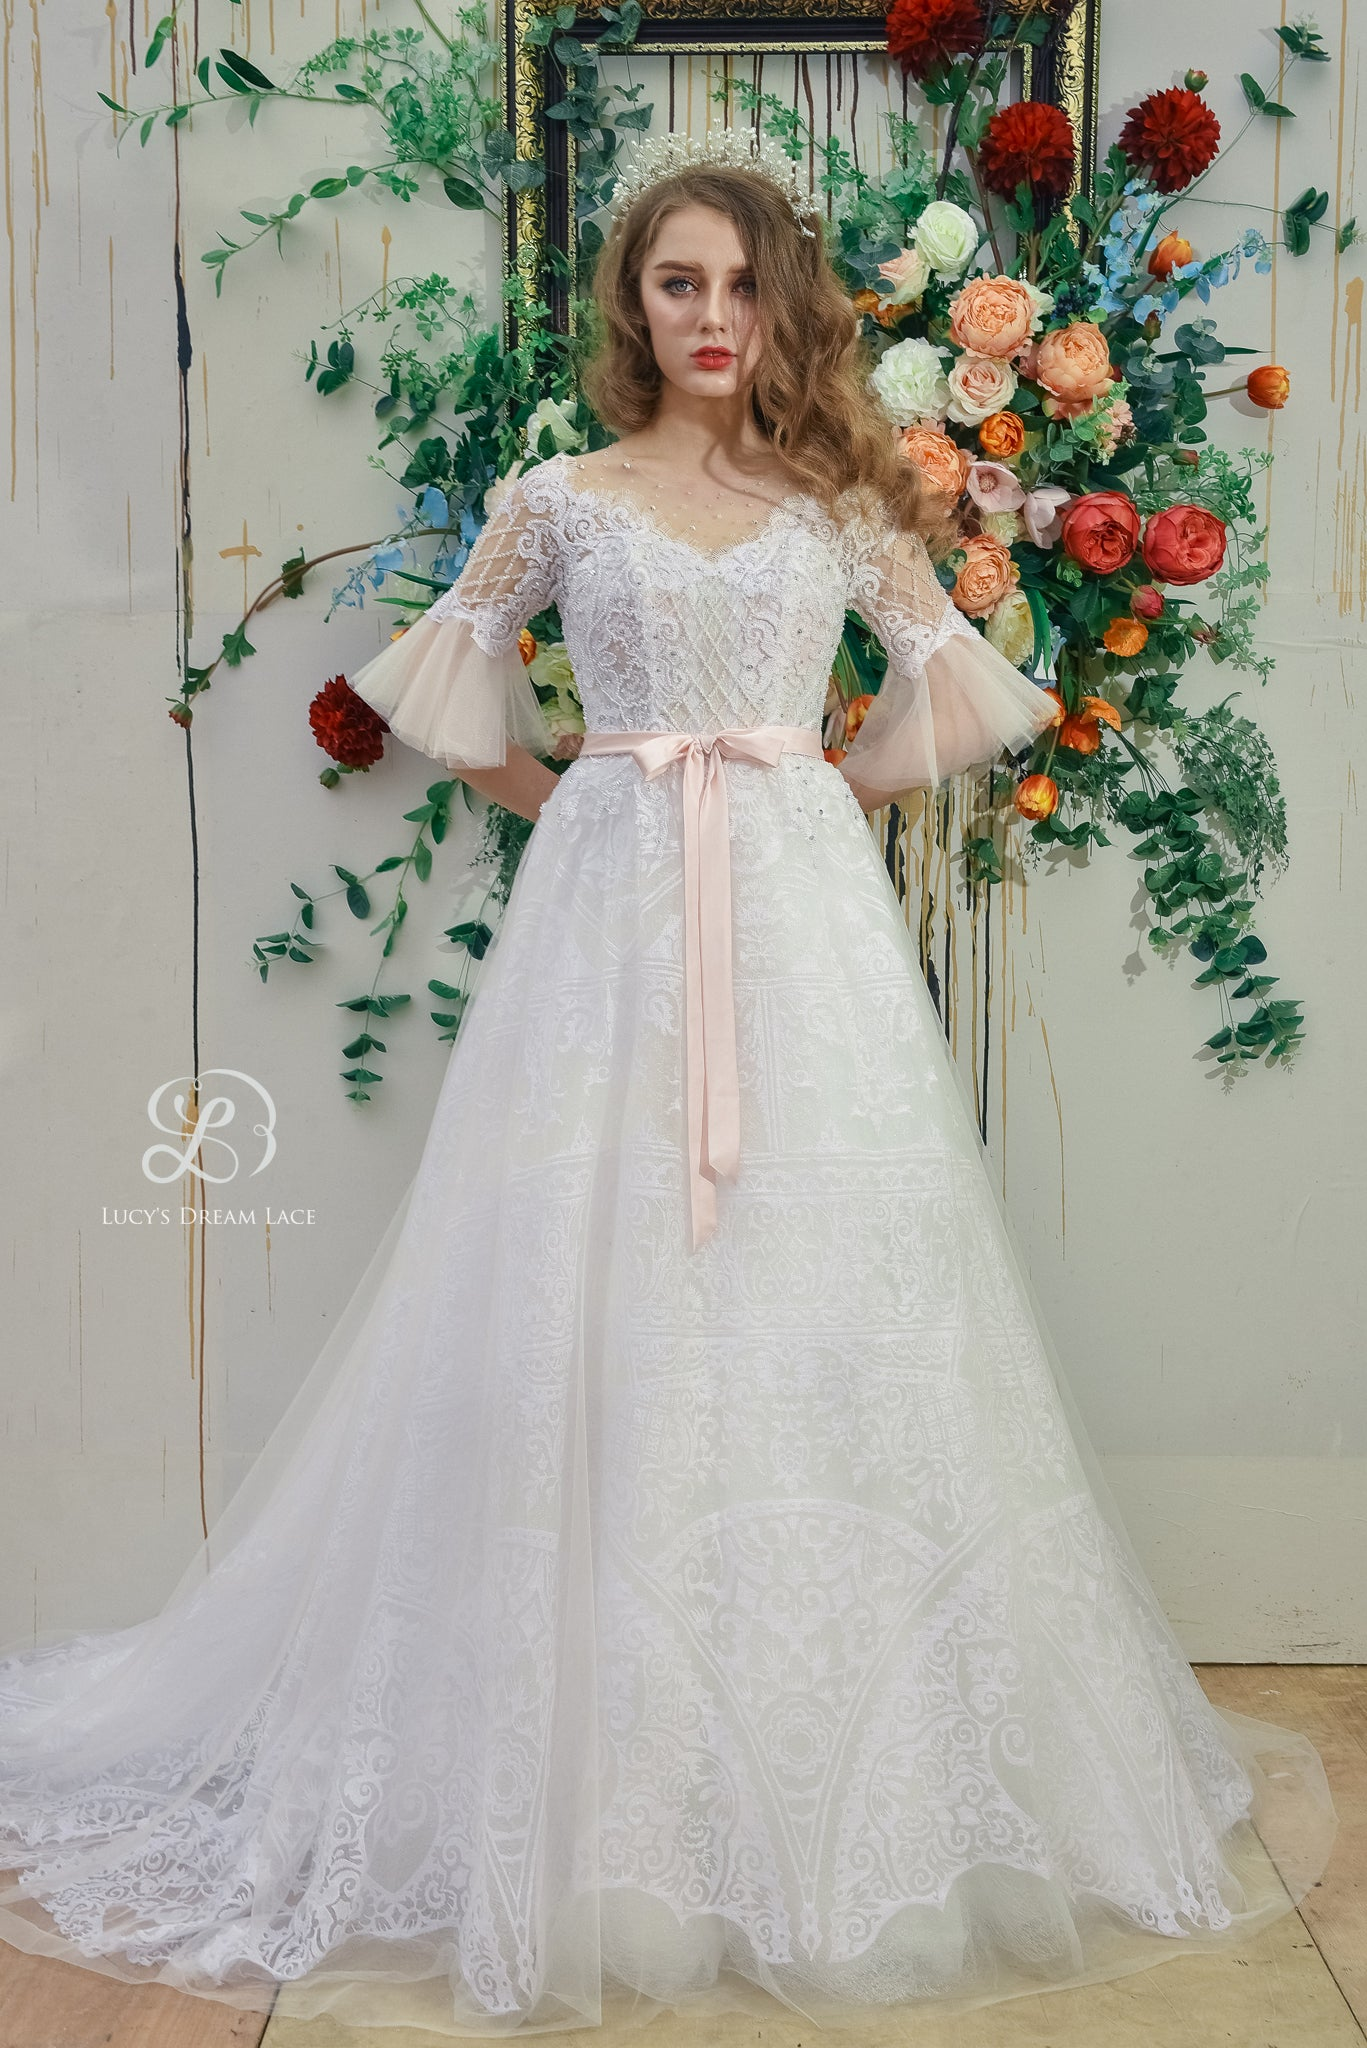 My Fairy Tale Love Story Wedding Dress With Pink Bow: Pink Fairy Wedding Dress At Reisefeber.org